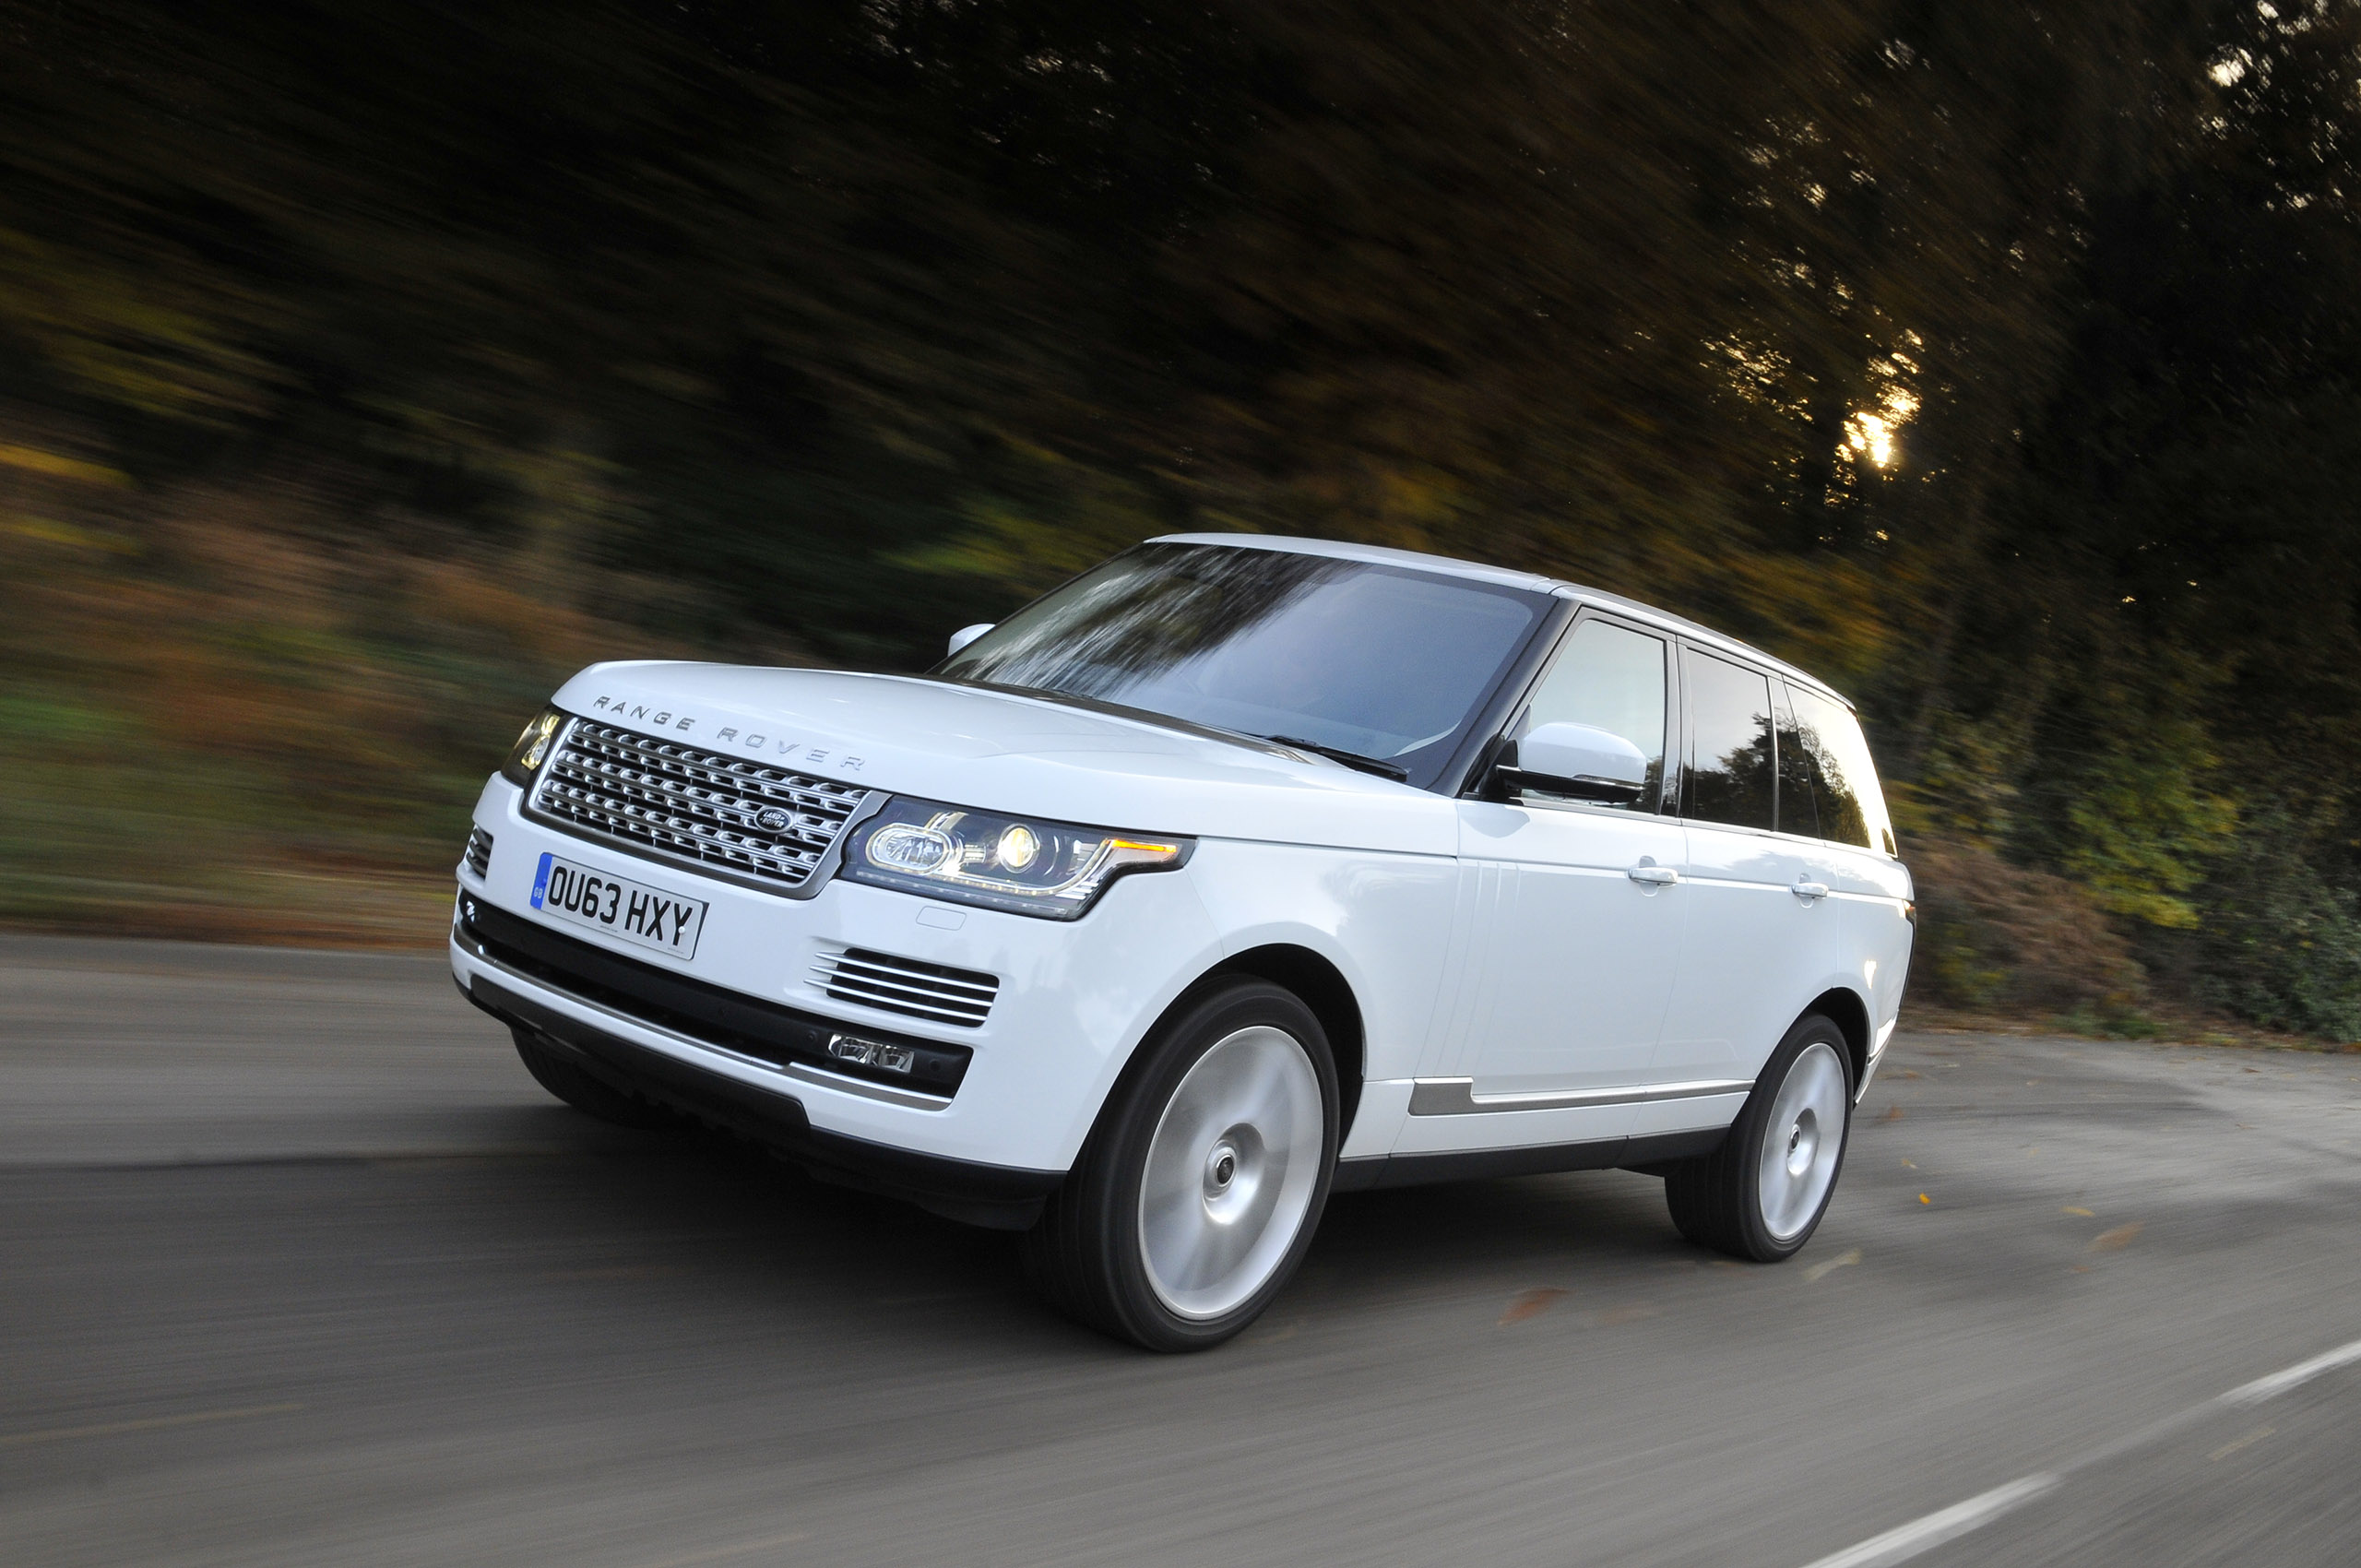 land landrover rover hse discovery sport crossover reviews news testdrives test drive luxury